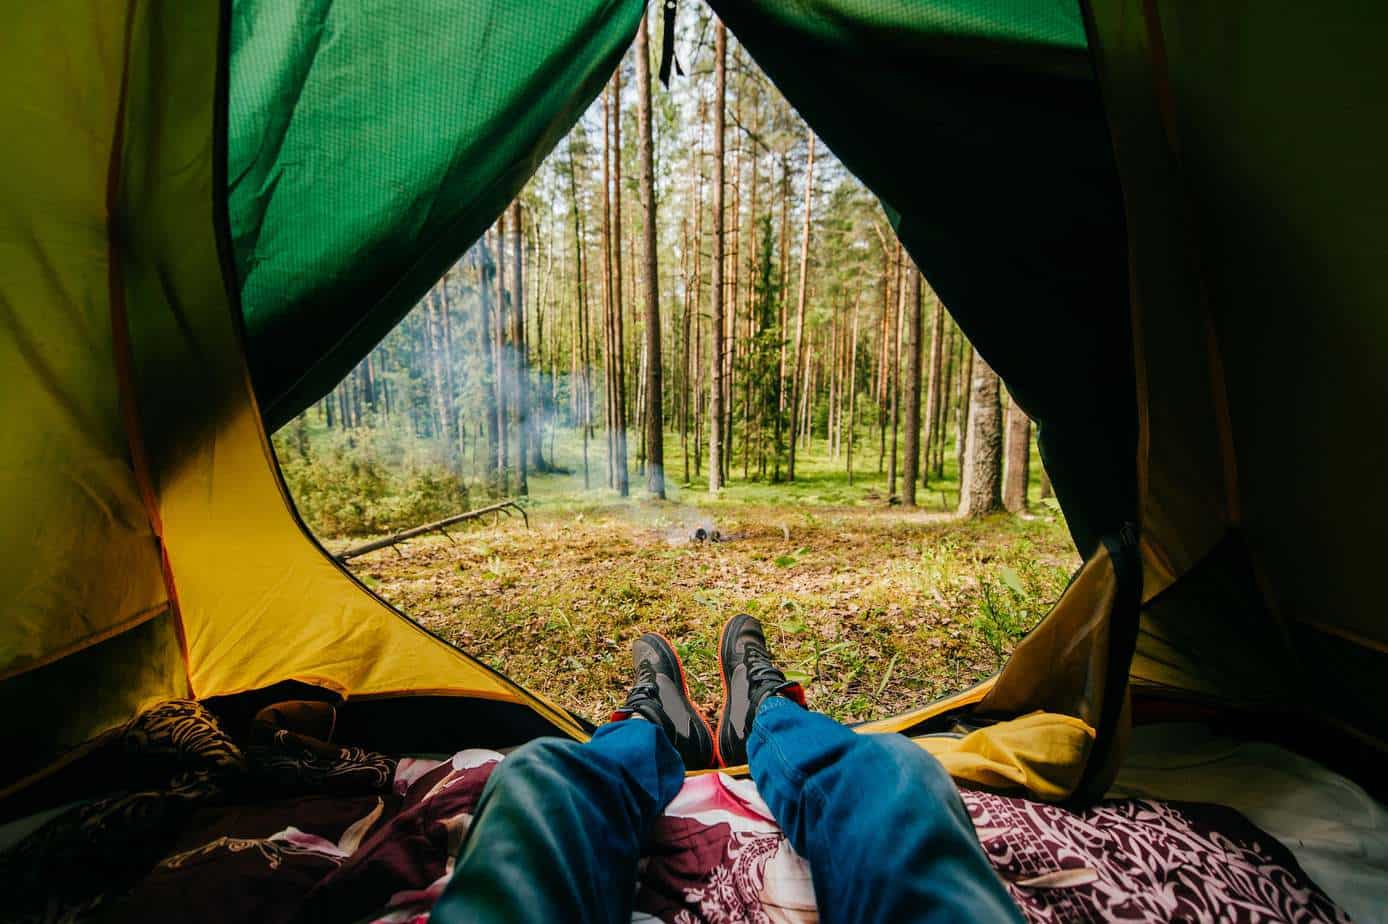 tent camping for beginners and camping tips to help you have a great camping experience